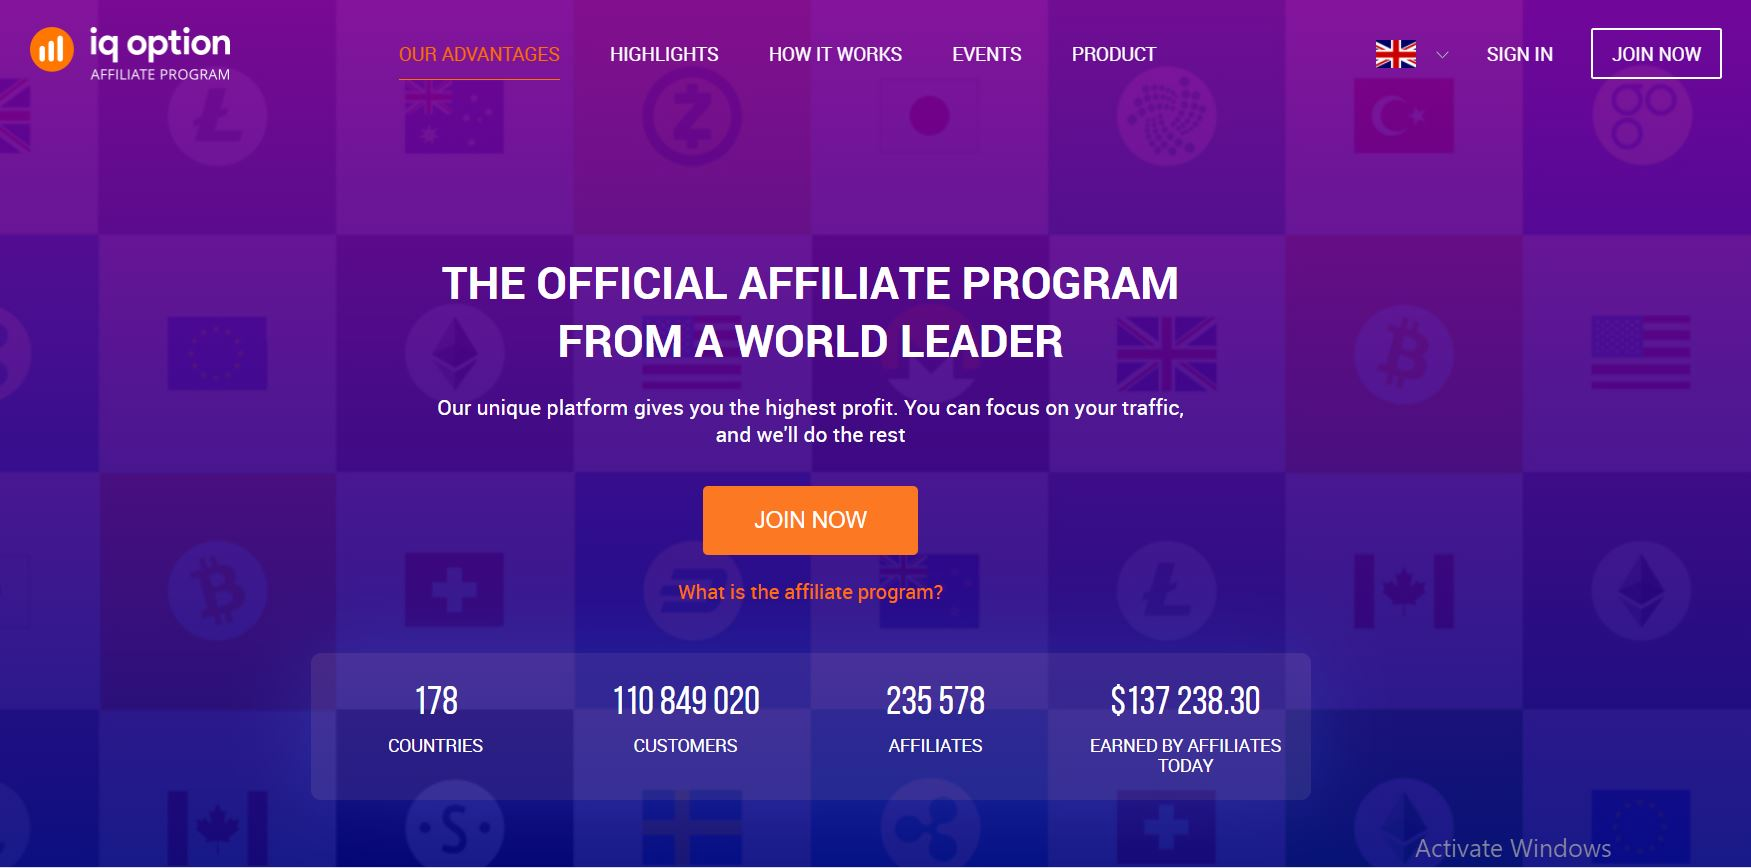 Get Started with IQ Options Affiliate Program